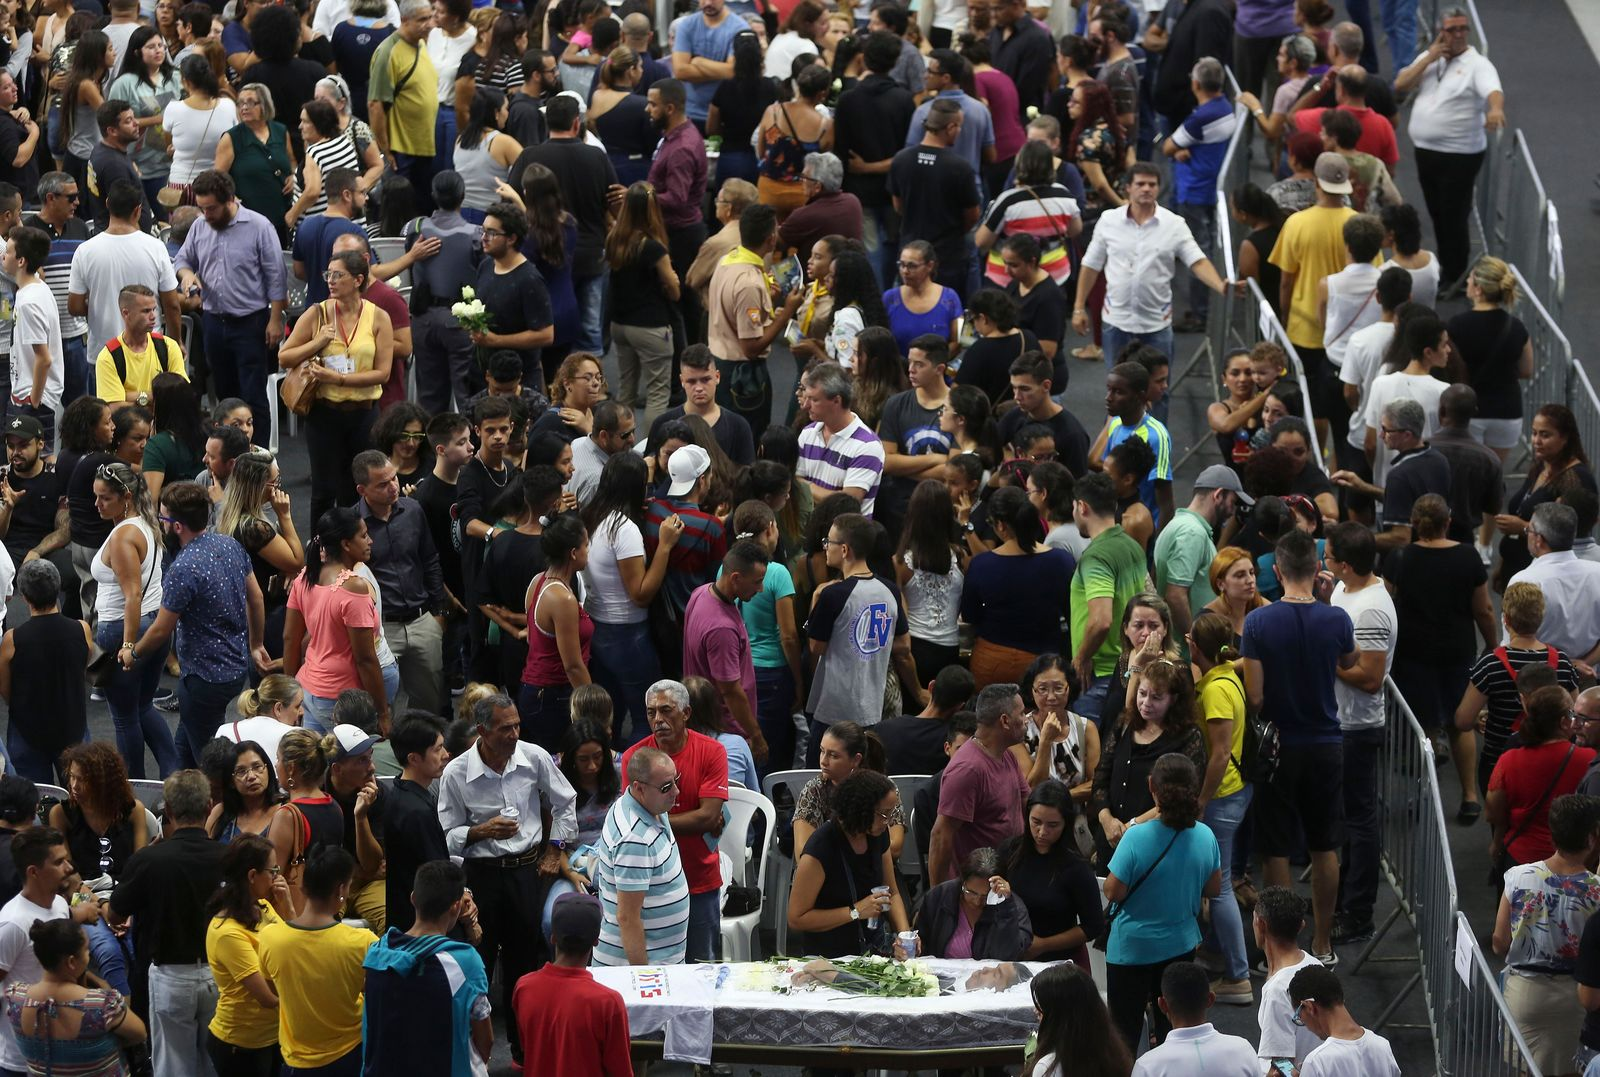 Relatives and friends pay their last respects as they walk past the coffin containing the remains of 17-year-old Claiton Antonio Ribeiro, a victim of the mass shooting at the Raul Brasil State School, in Suzano, Brazil, Thursday, March 14, 2019. (AP Photo/Andre Penner)